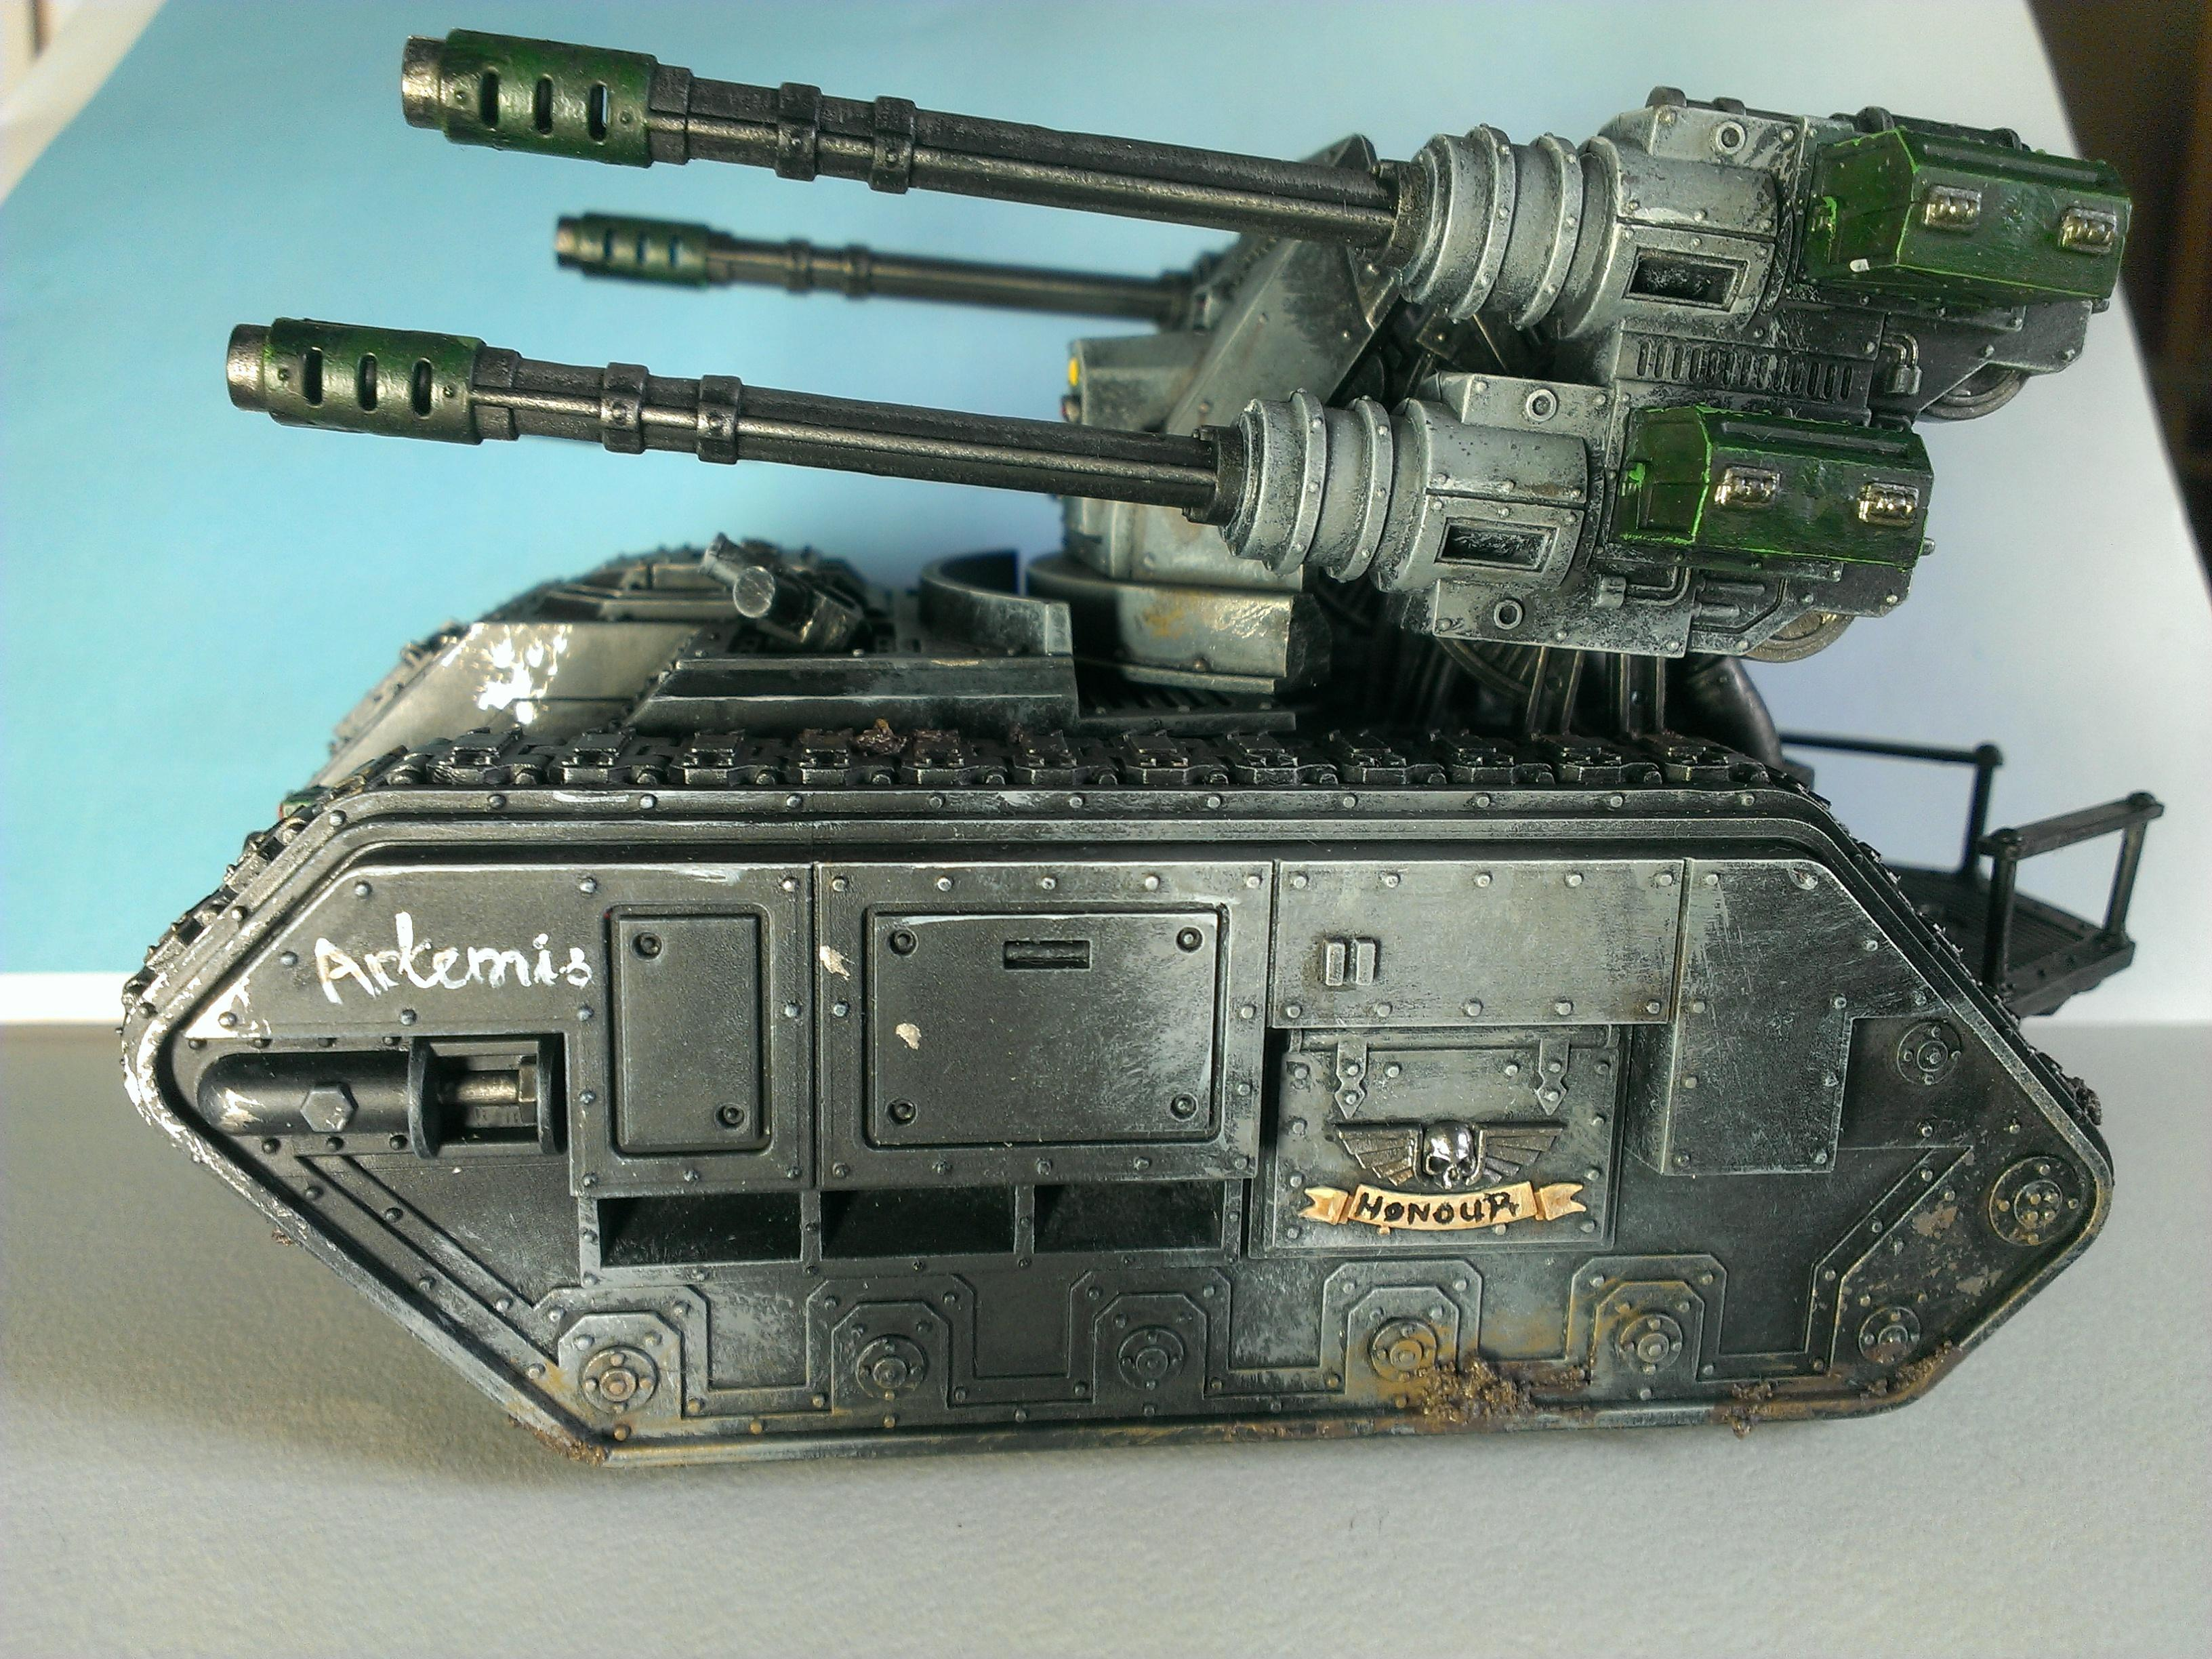 Hydra, Imperial Guard, Tank, Vehicle, Warhammer 40,000, Wyvern